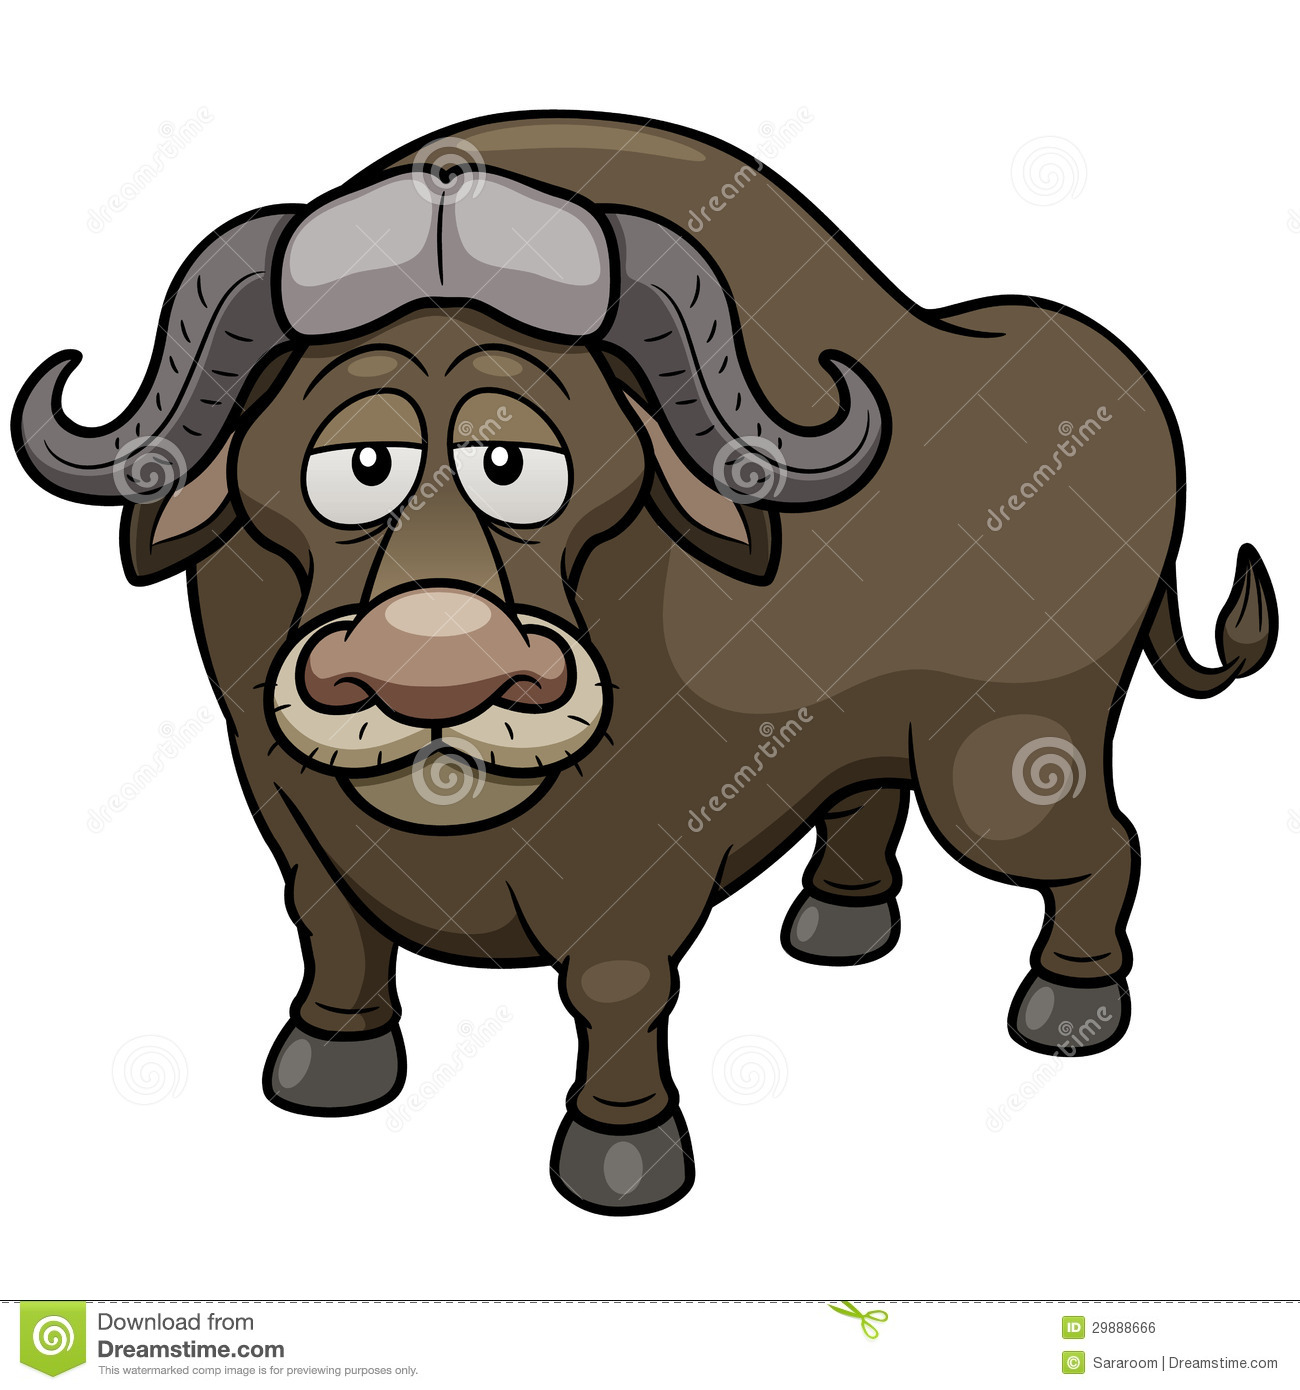 African Buffalo Cartoon Royalty Free Stock Image - Image: 29888666